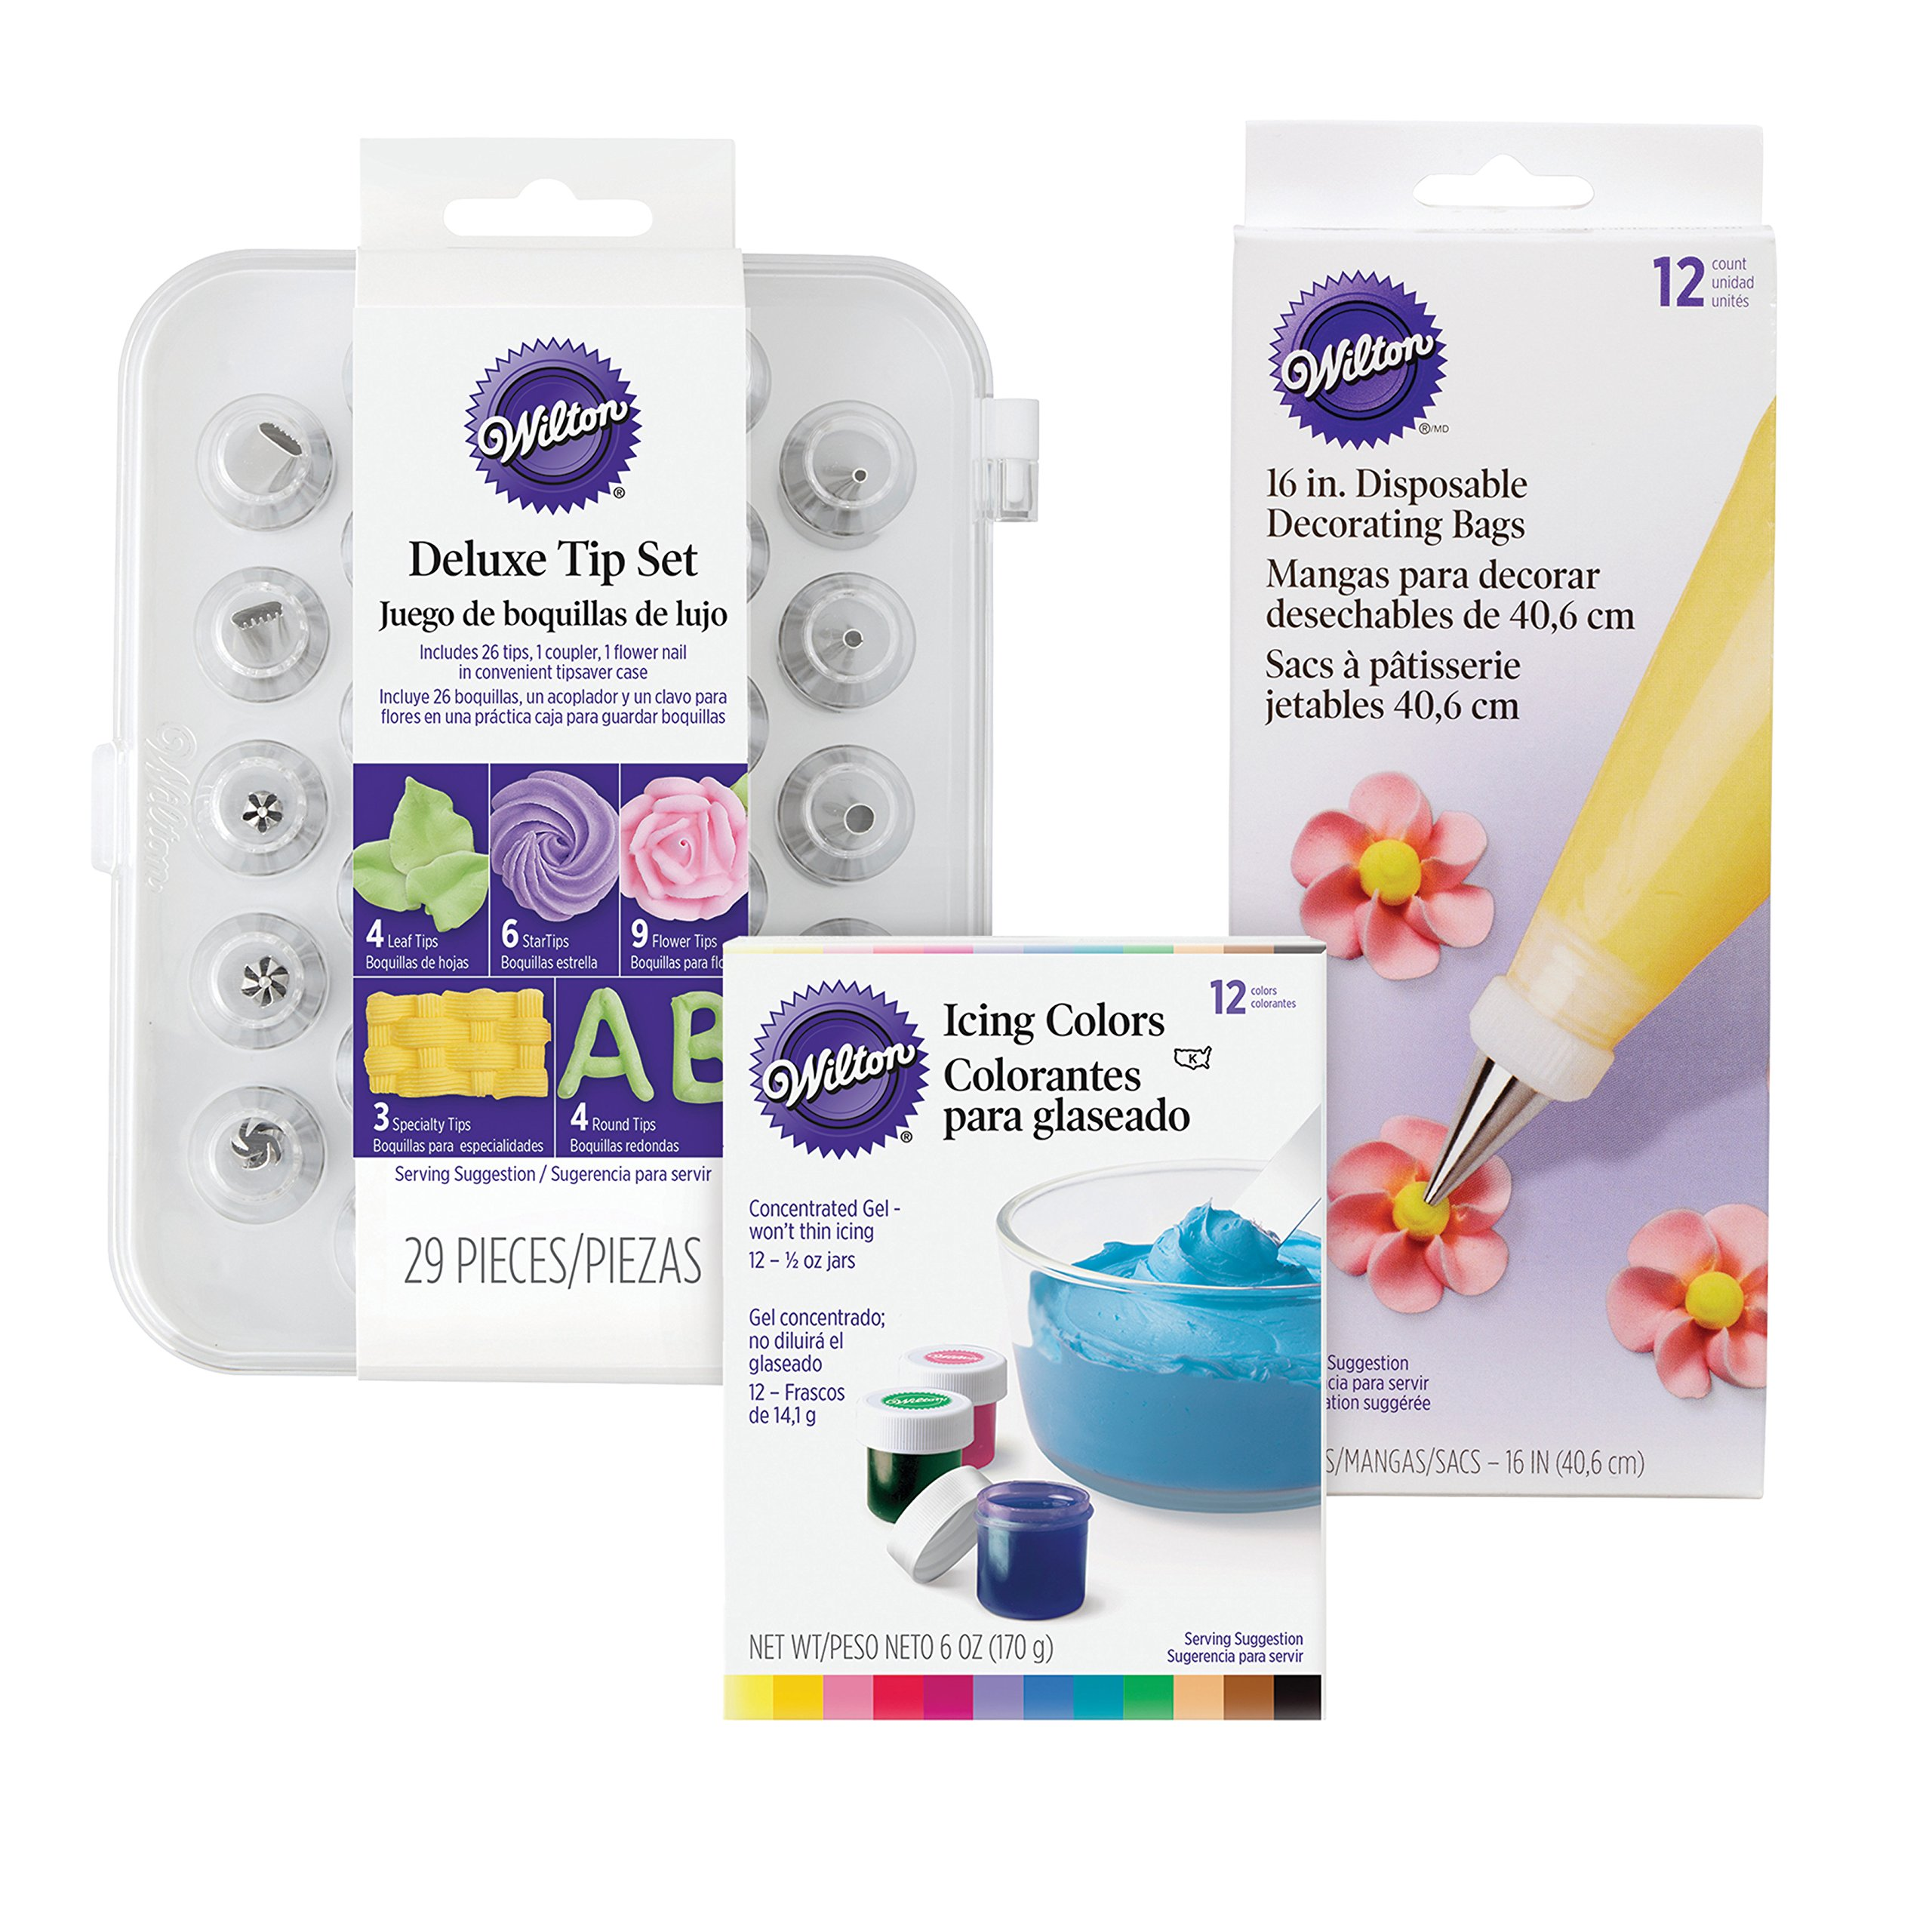 Wilton Deluxe Cake Decorating Tip Set, 52-Piece - 12 Gel-Based Icing Colors, 12 Count Package of 16-inch Disposable Decorating Bags and 29-Piece Deluxe Tip Set with case by Wilton (Image #1)